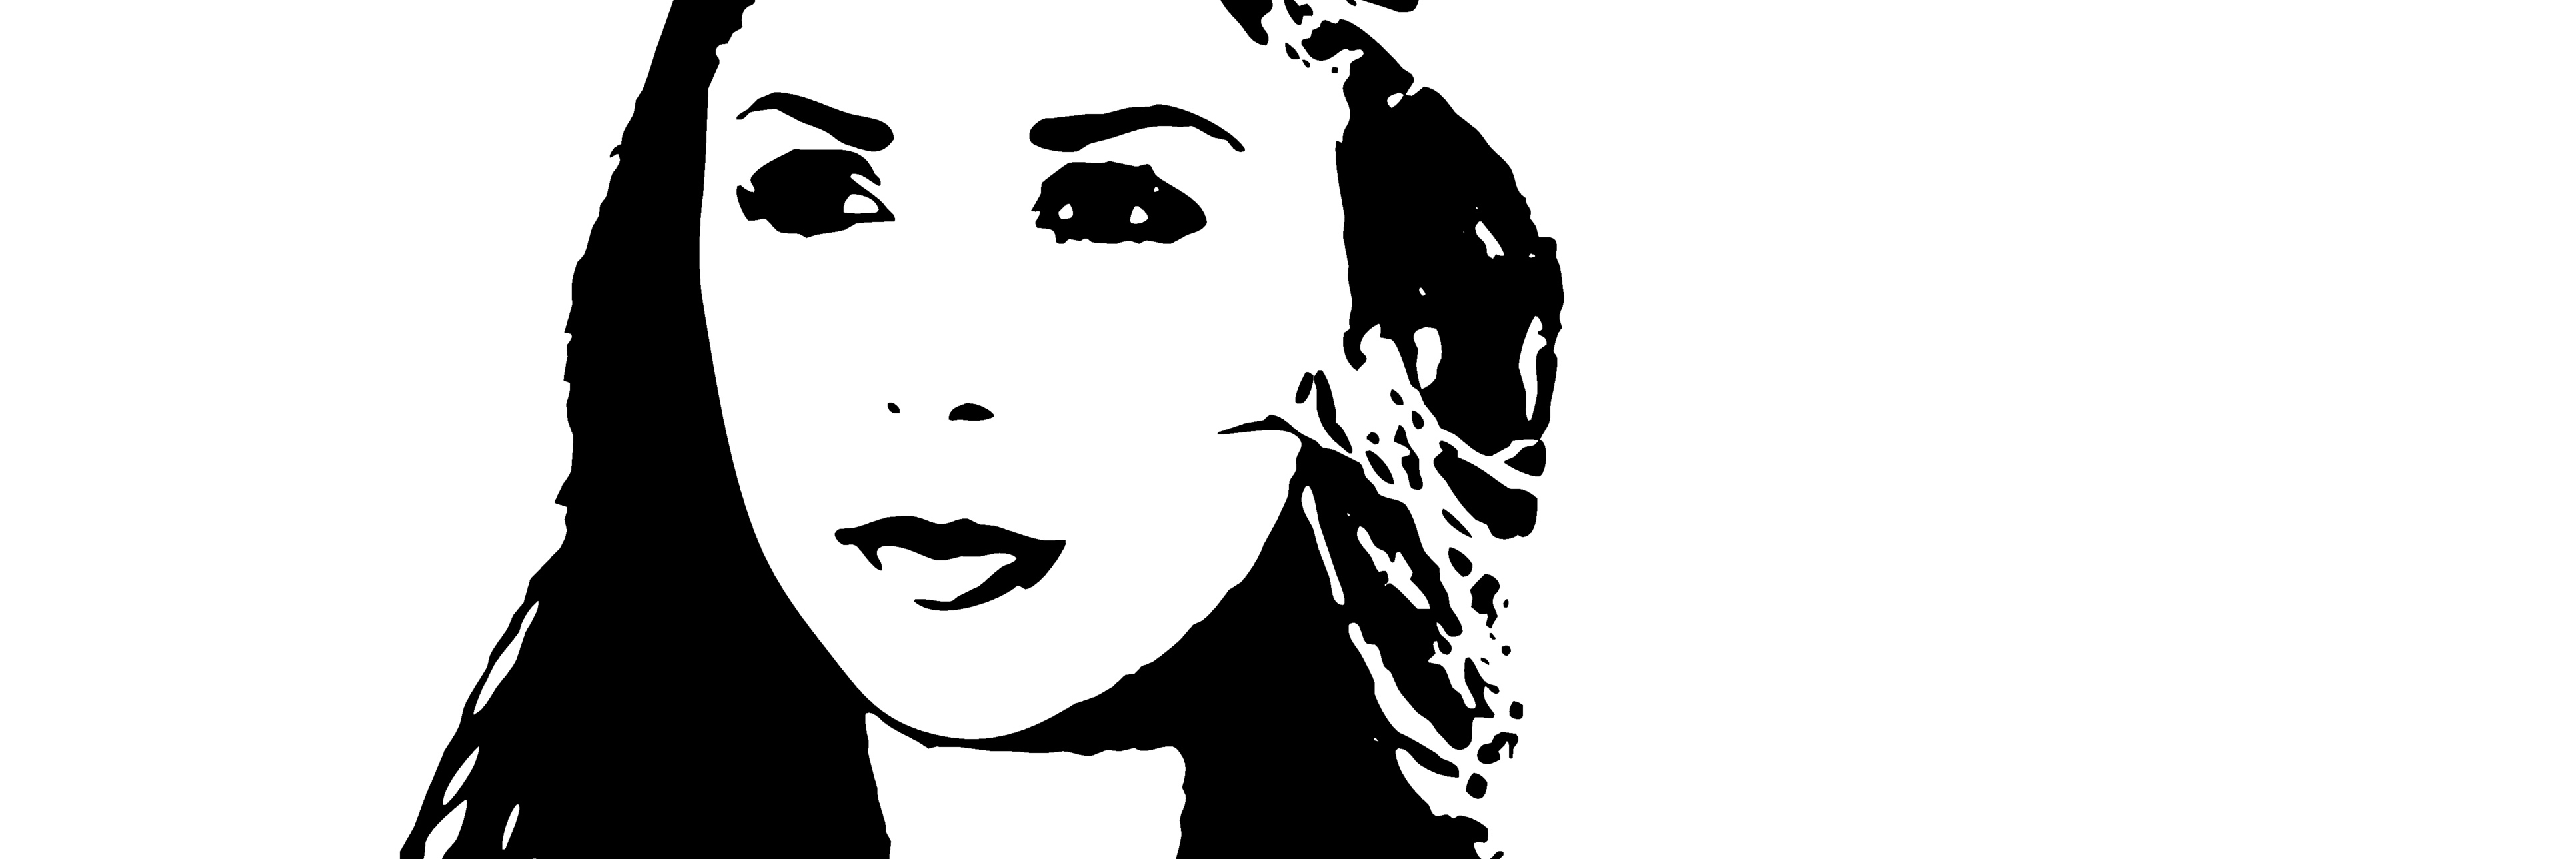 Vector graphic of a young woman in black on a white background.